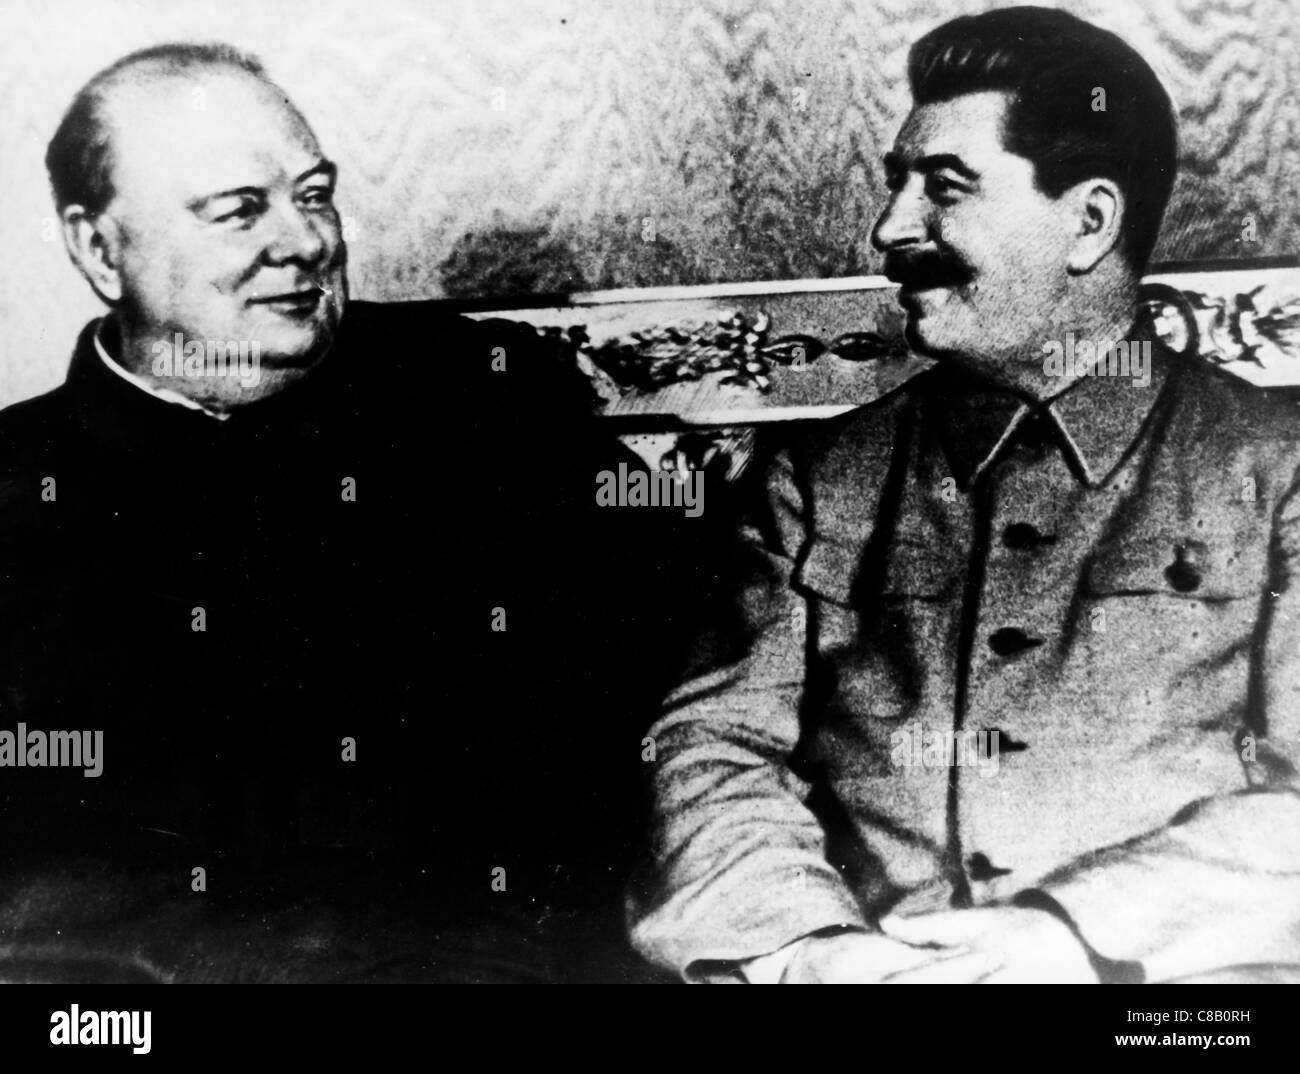 Giuseppe Stalin,Winston Churchill,1945 - Stock Image